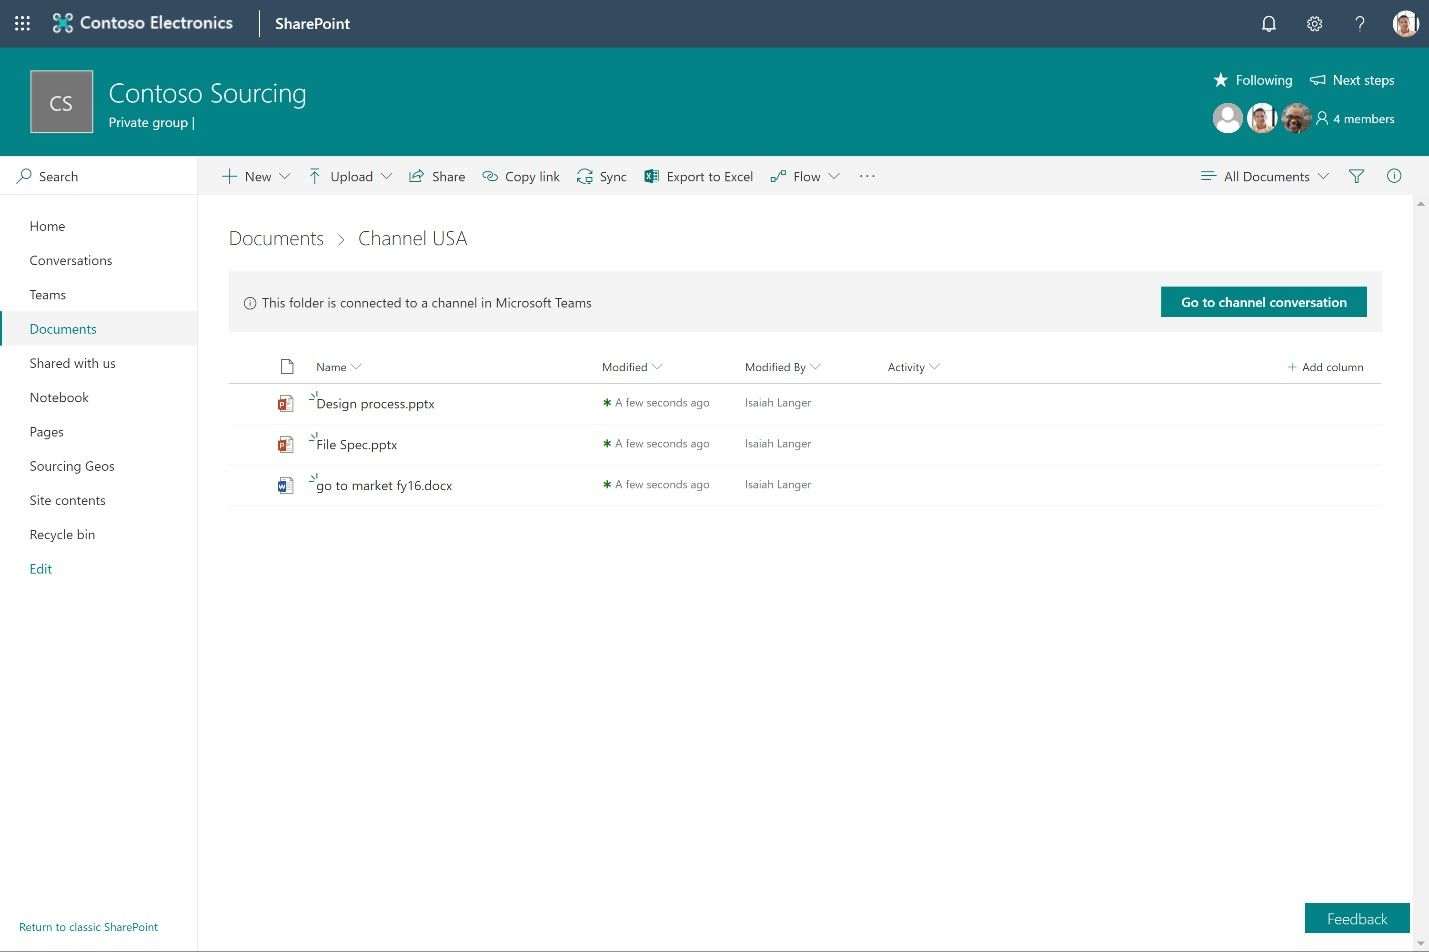 SharePoint powers teamwork in Office 365 – Ignite 2018